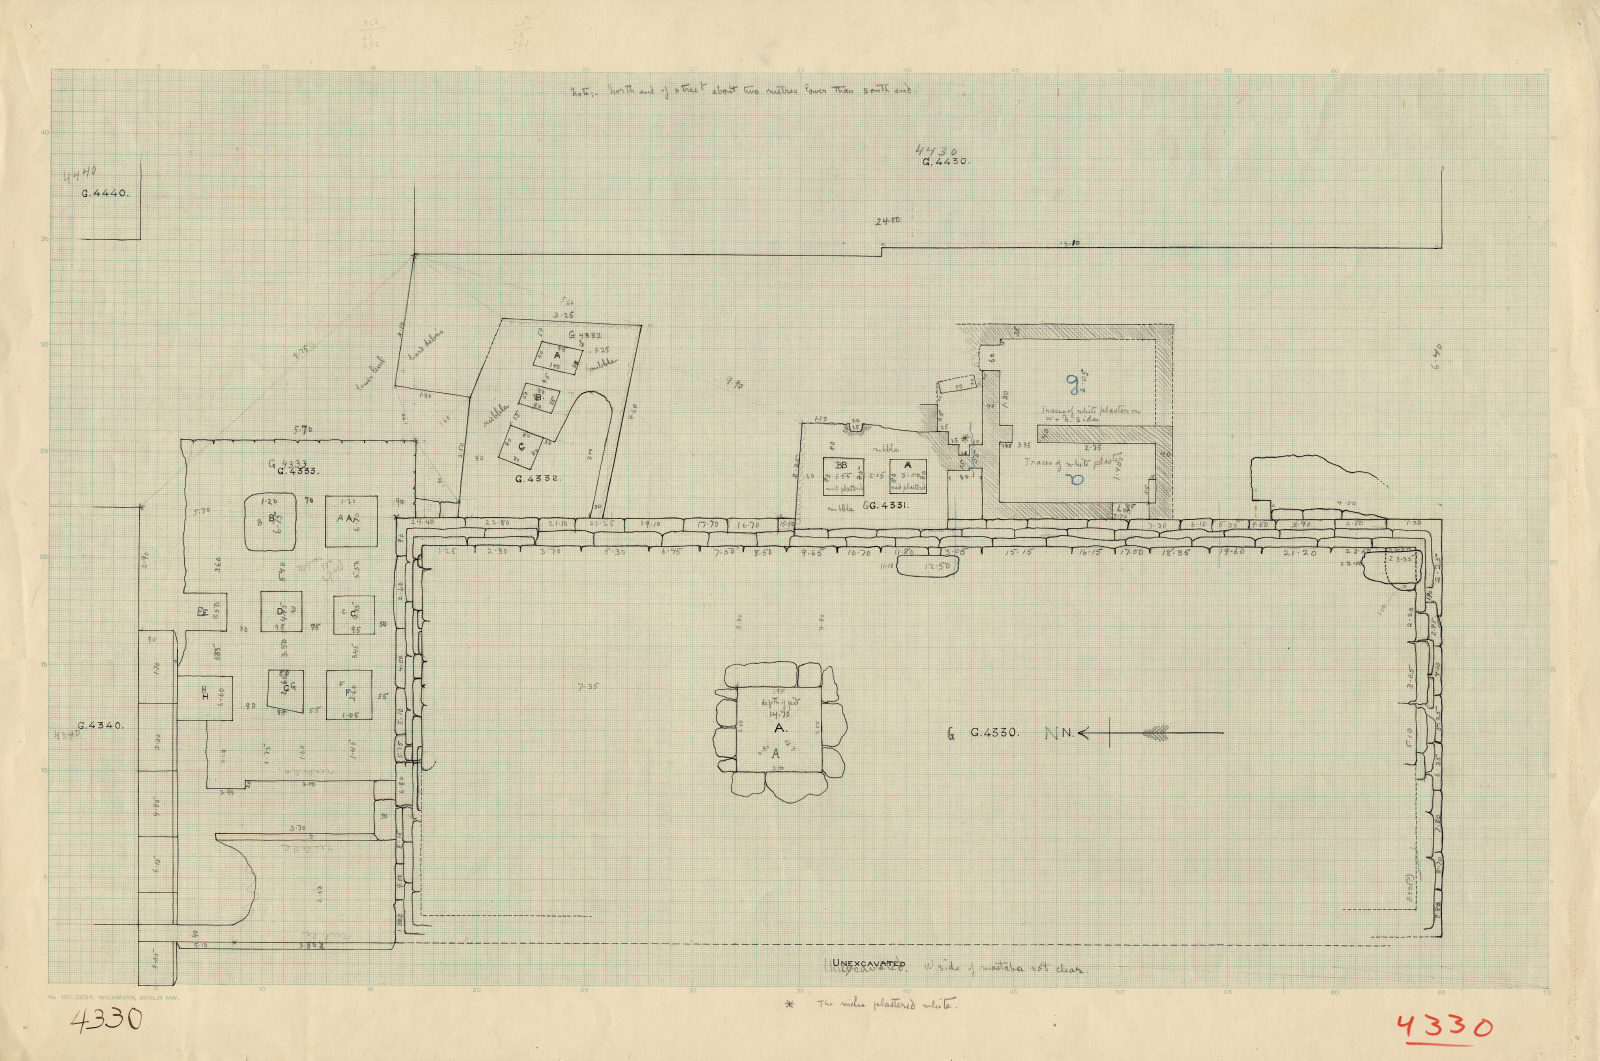 Maps and plans: Plan of G 4330, with positions of G 4331, G 4332, G 4333, G 4340, G 4430, G 4440